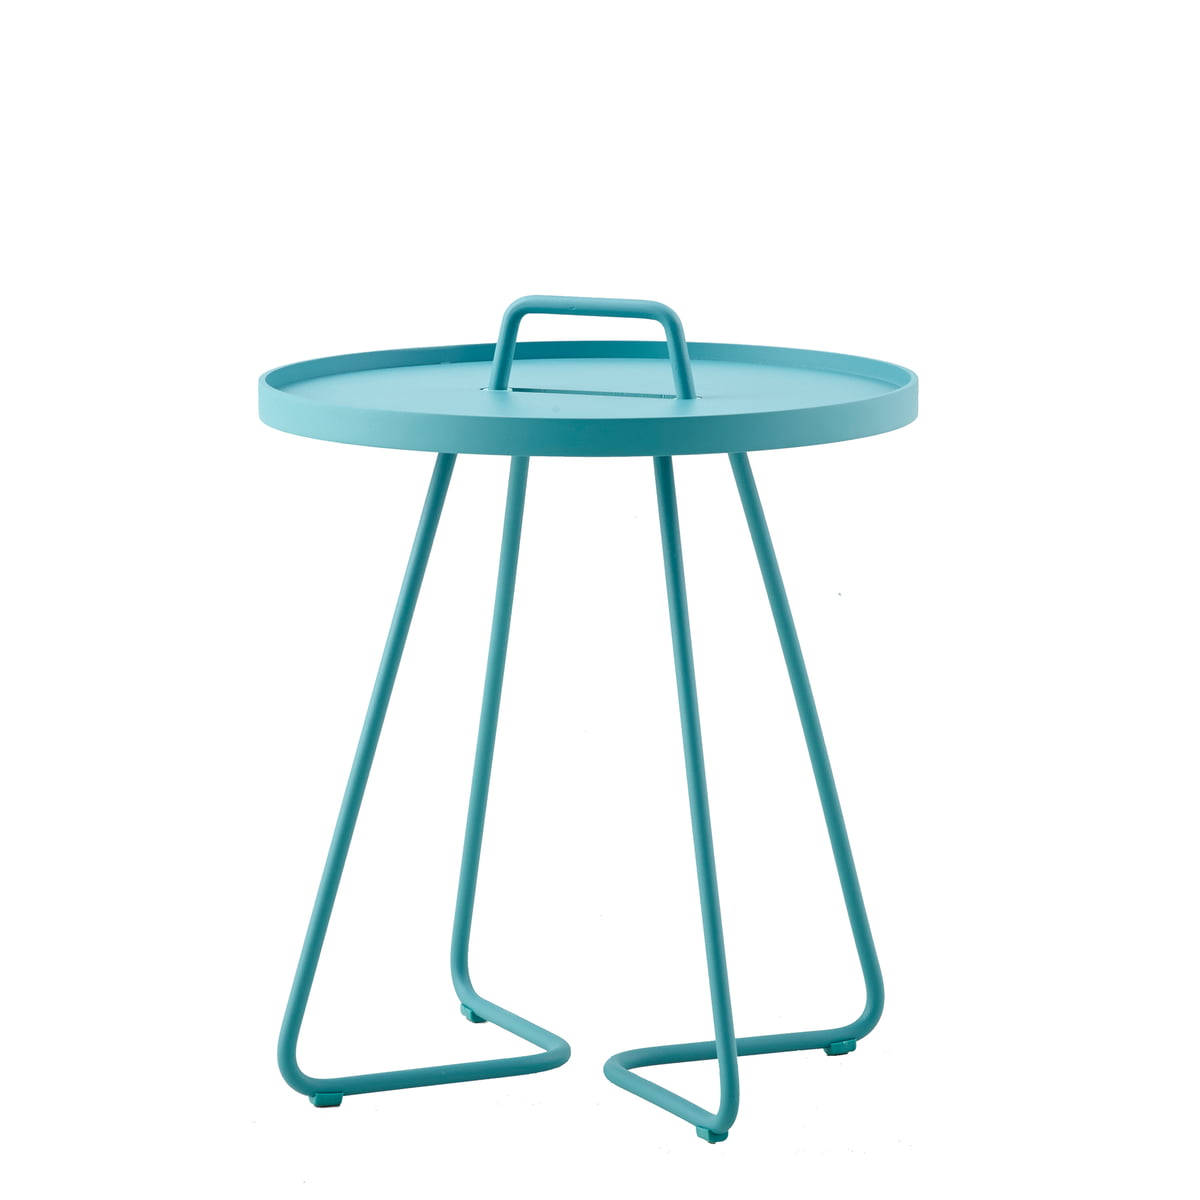 Cane-line - On-the-move Beistelltisch, Ø 44 x H 52 cm, aqua